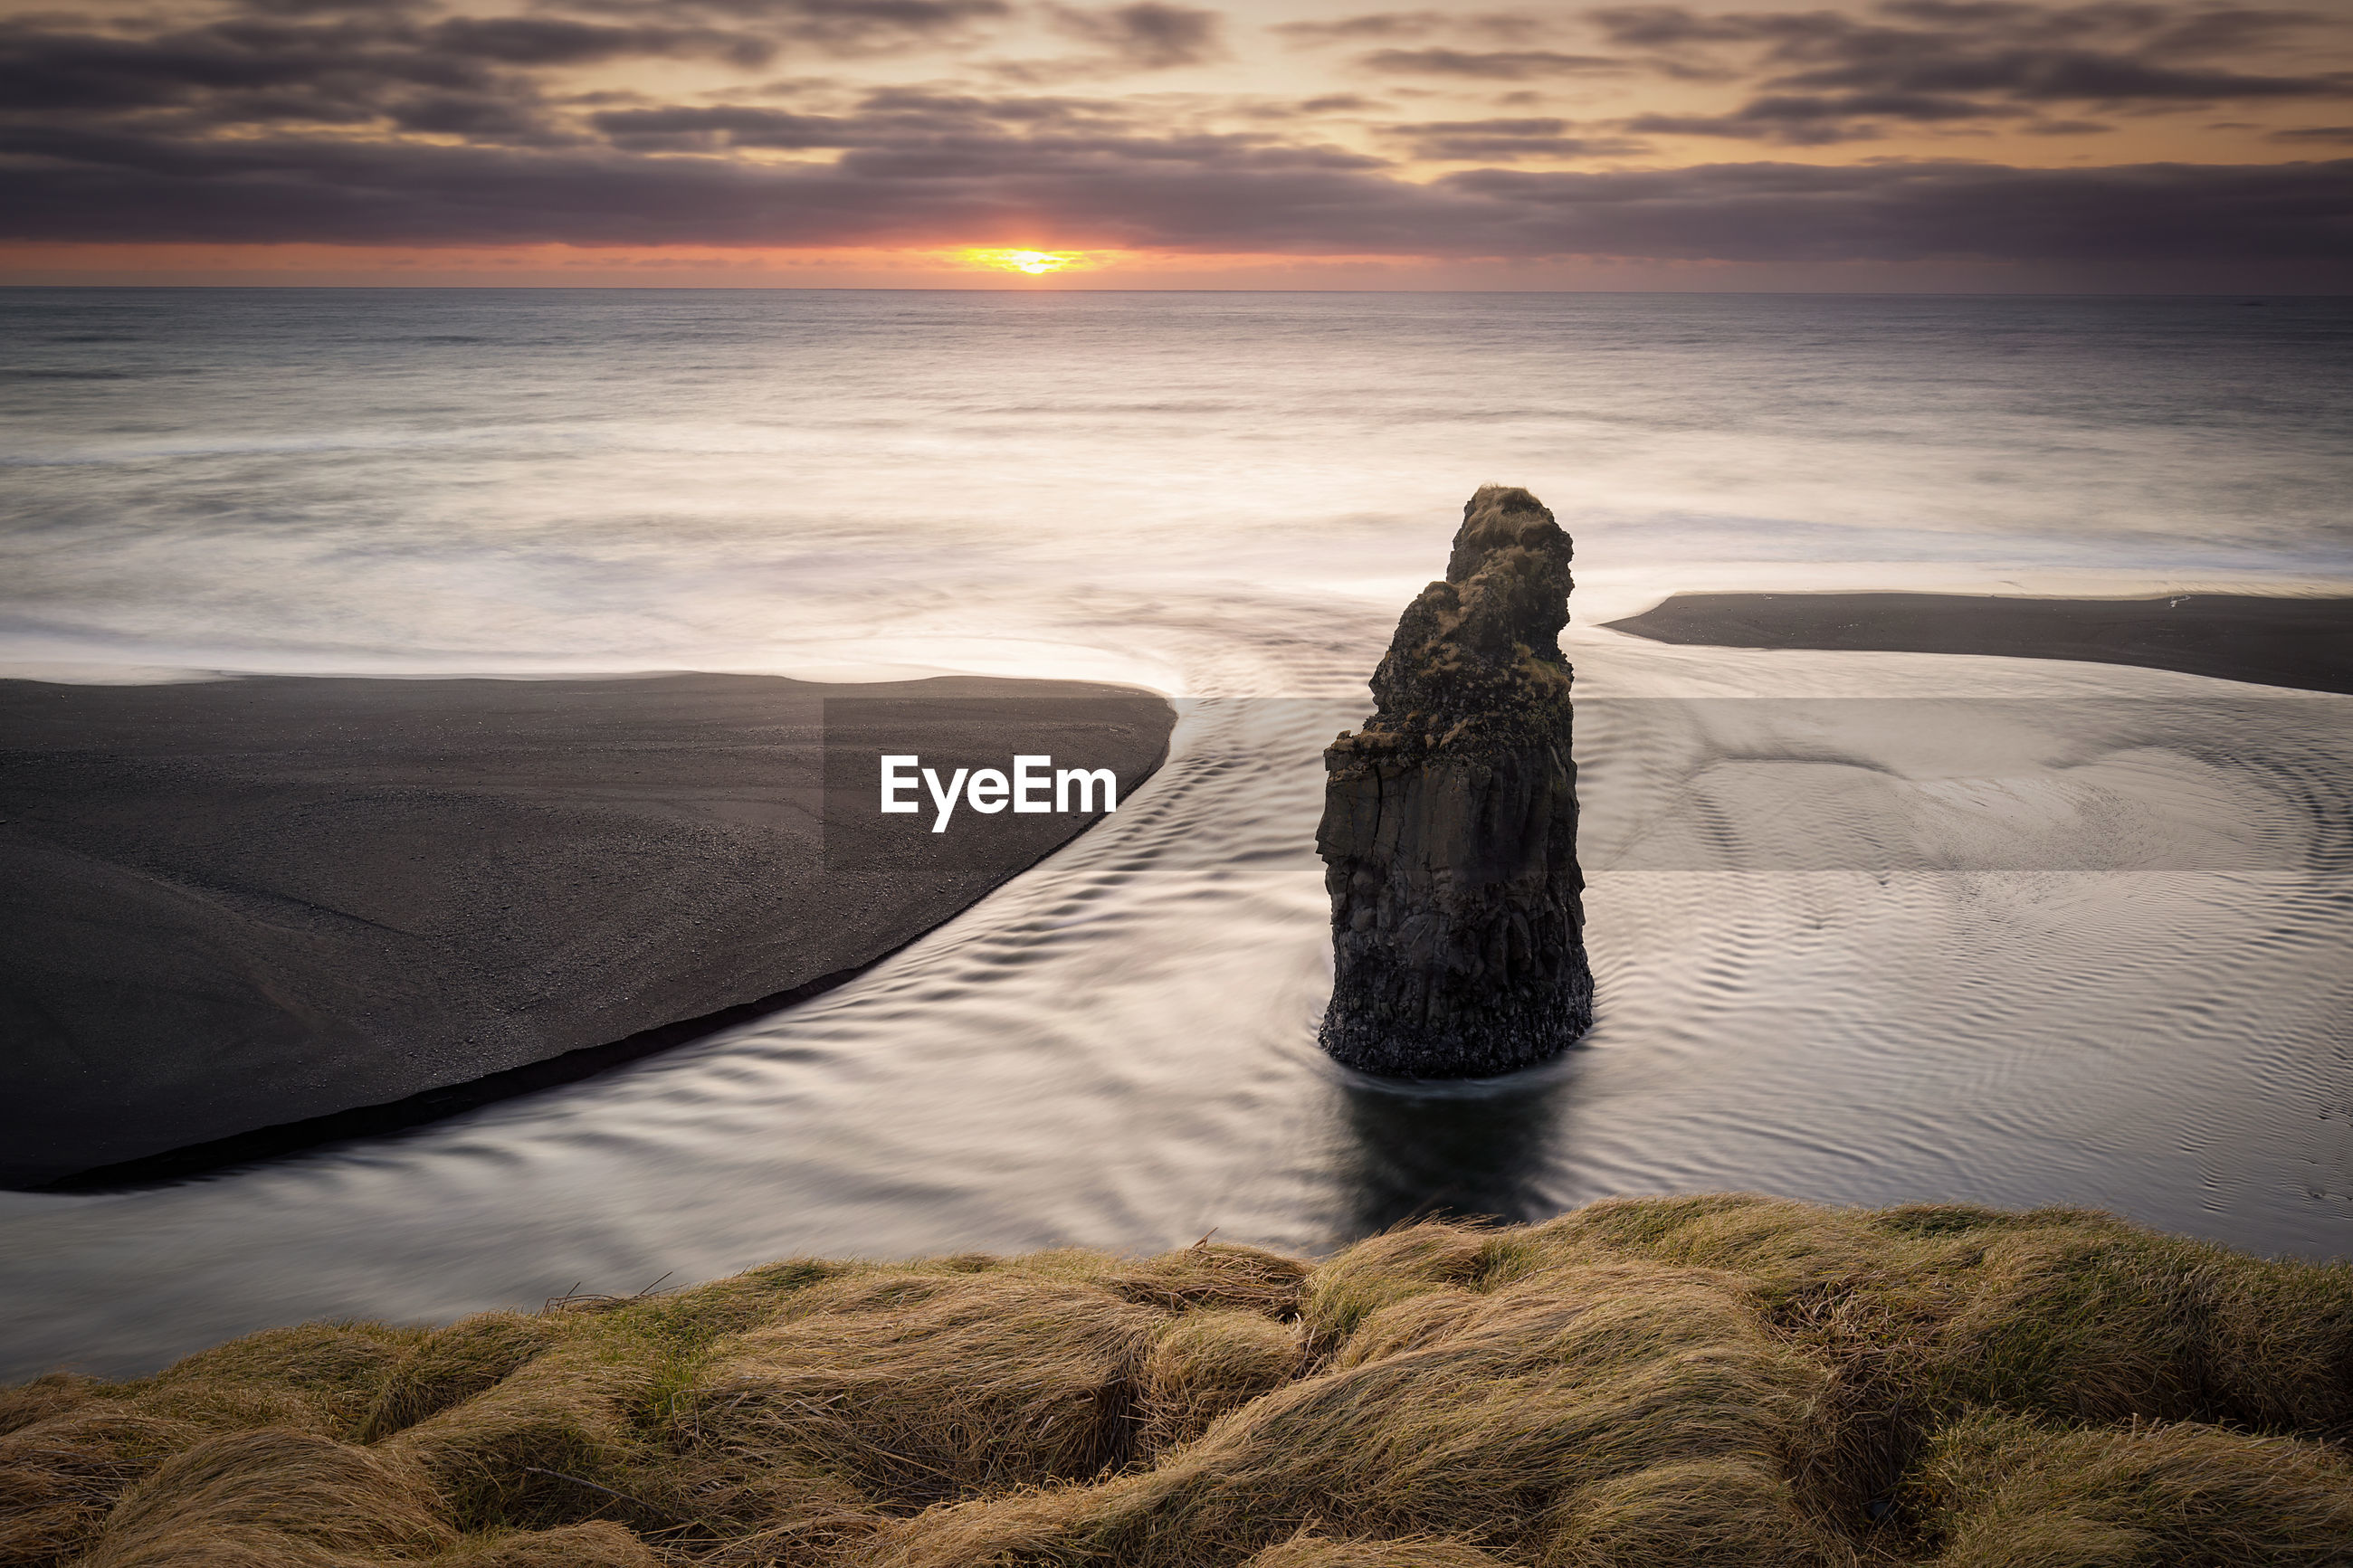 Scenic view of sea with rock formation against sky during sunset